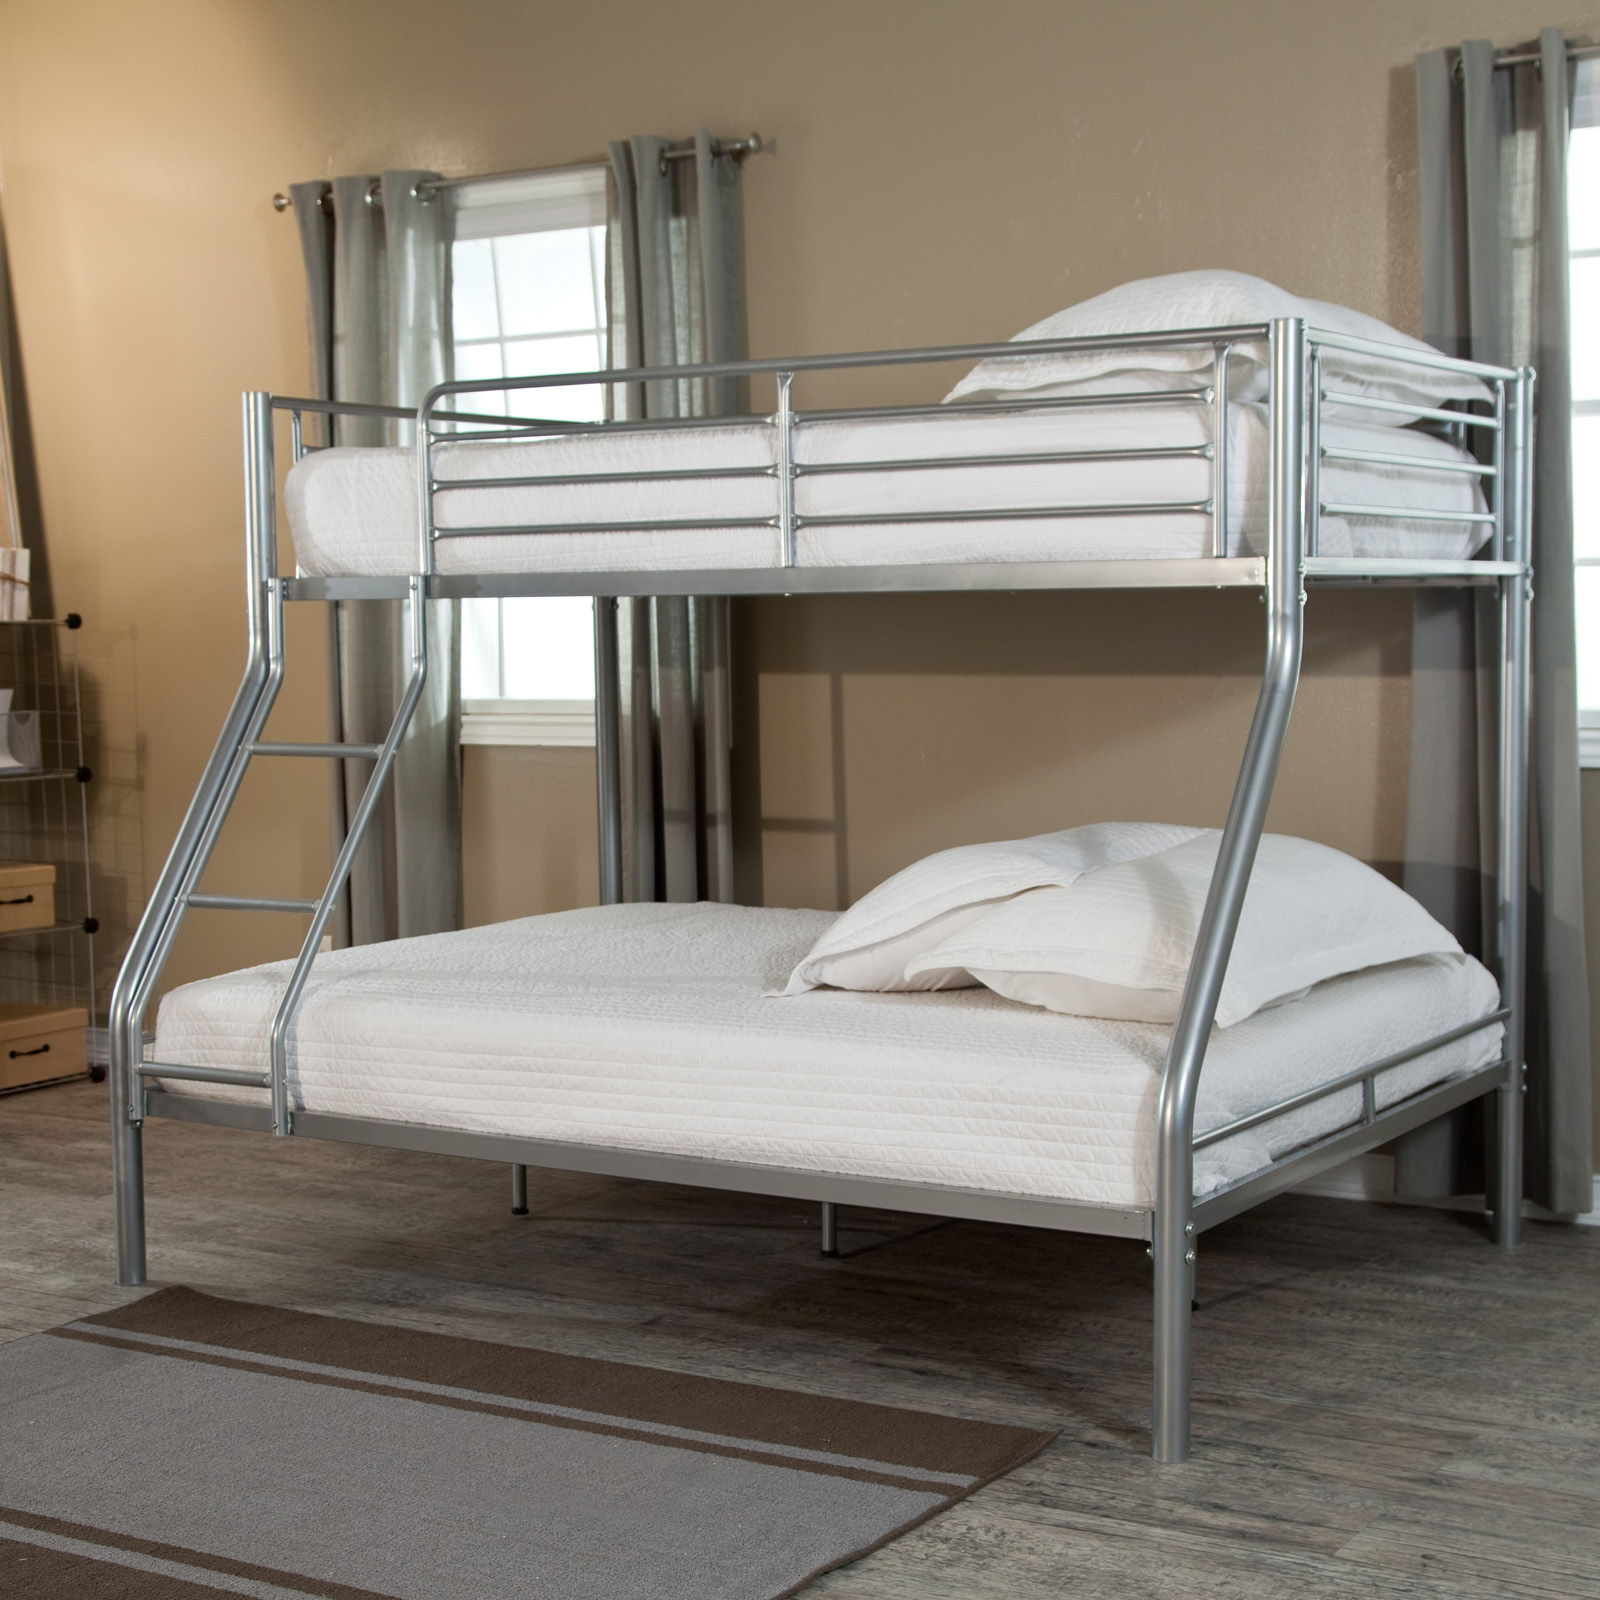 duro wesley twin over full bunk bed - silver - bunk beds & loft